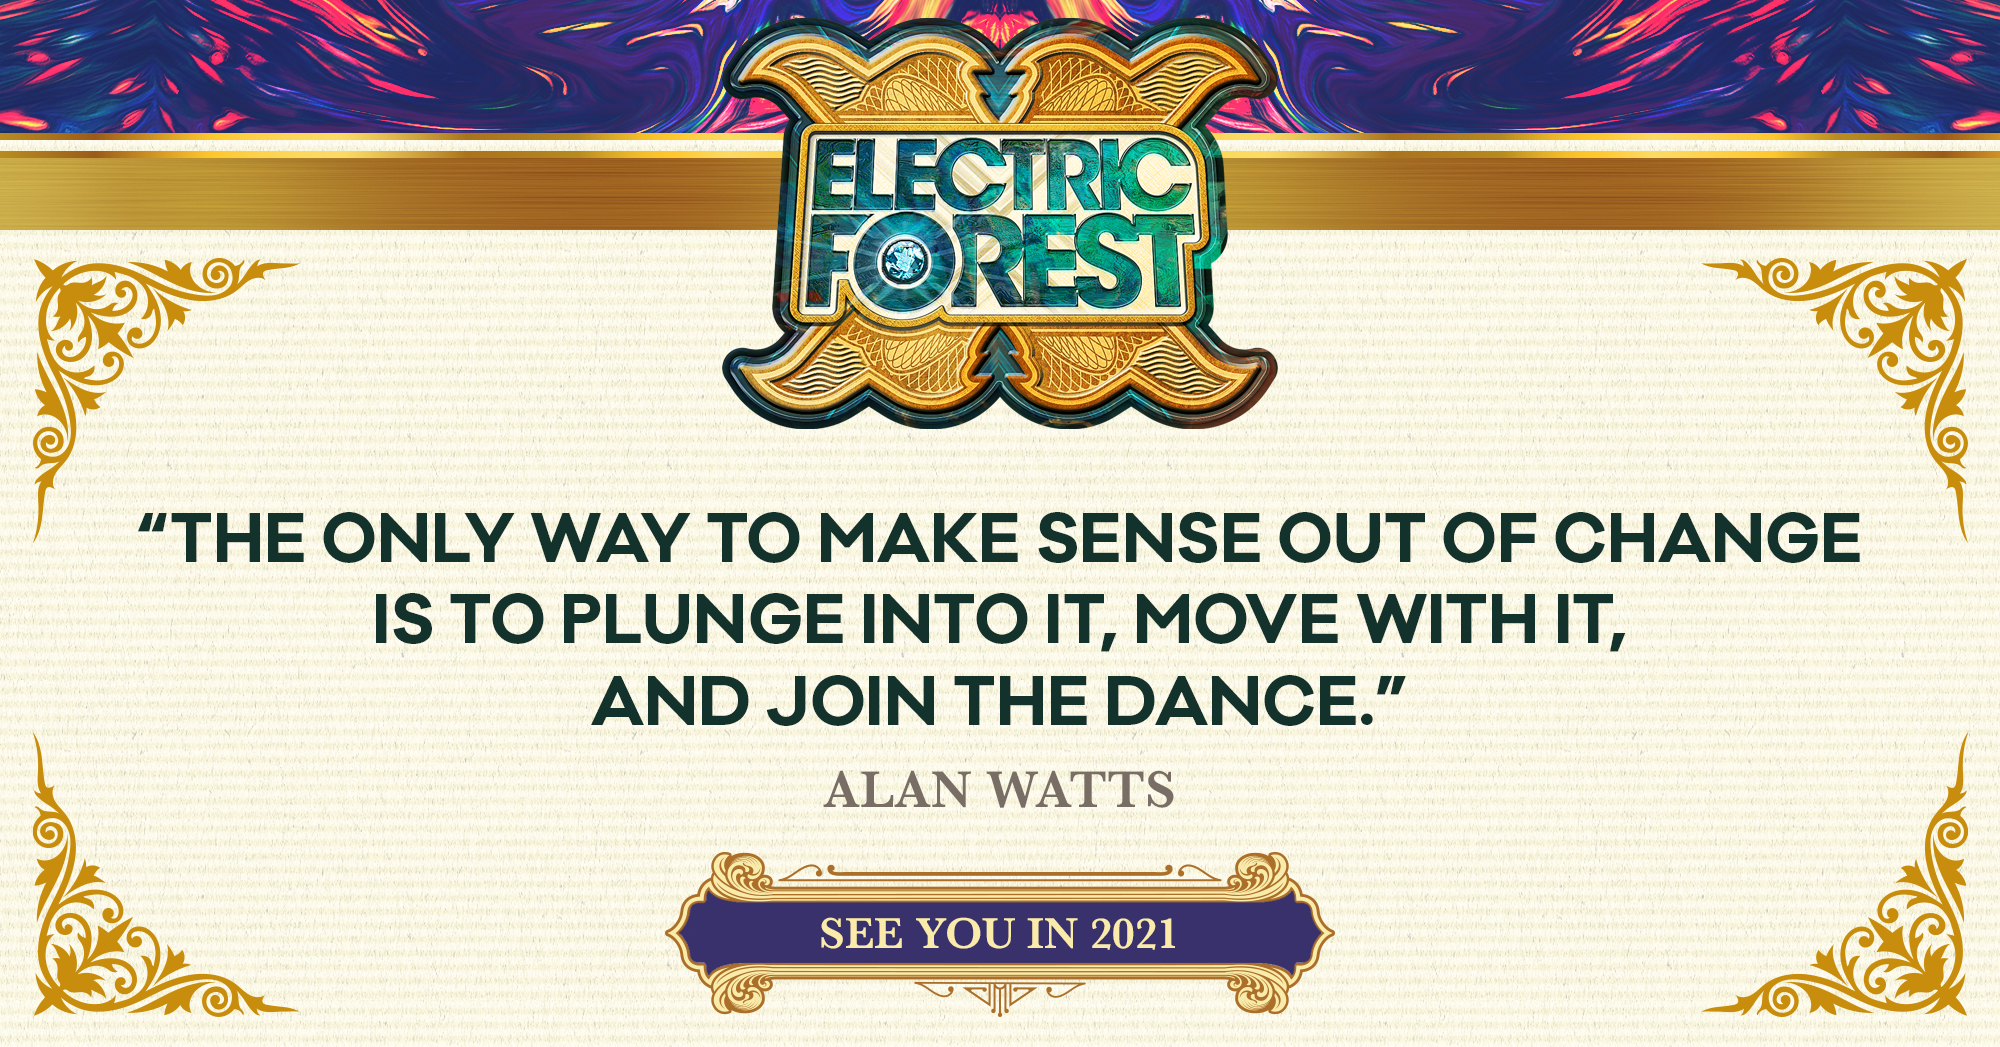 Electric Forest 2020 Cancelled, 2021 Announced